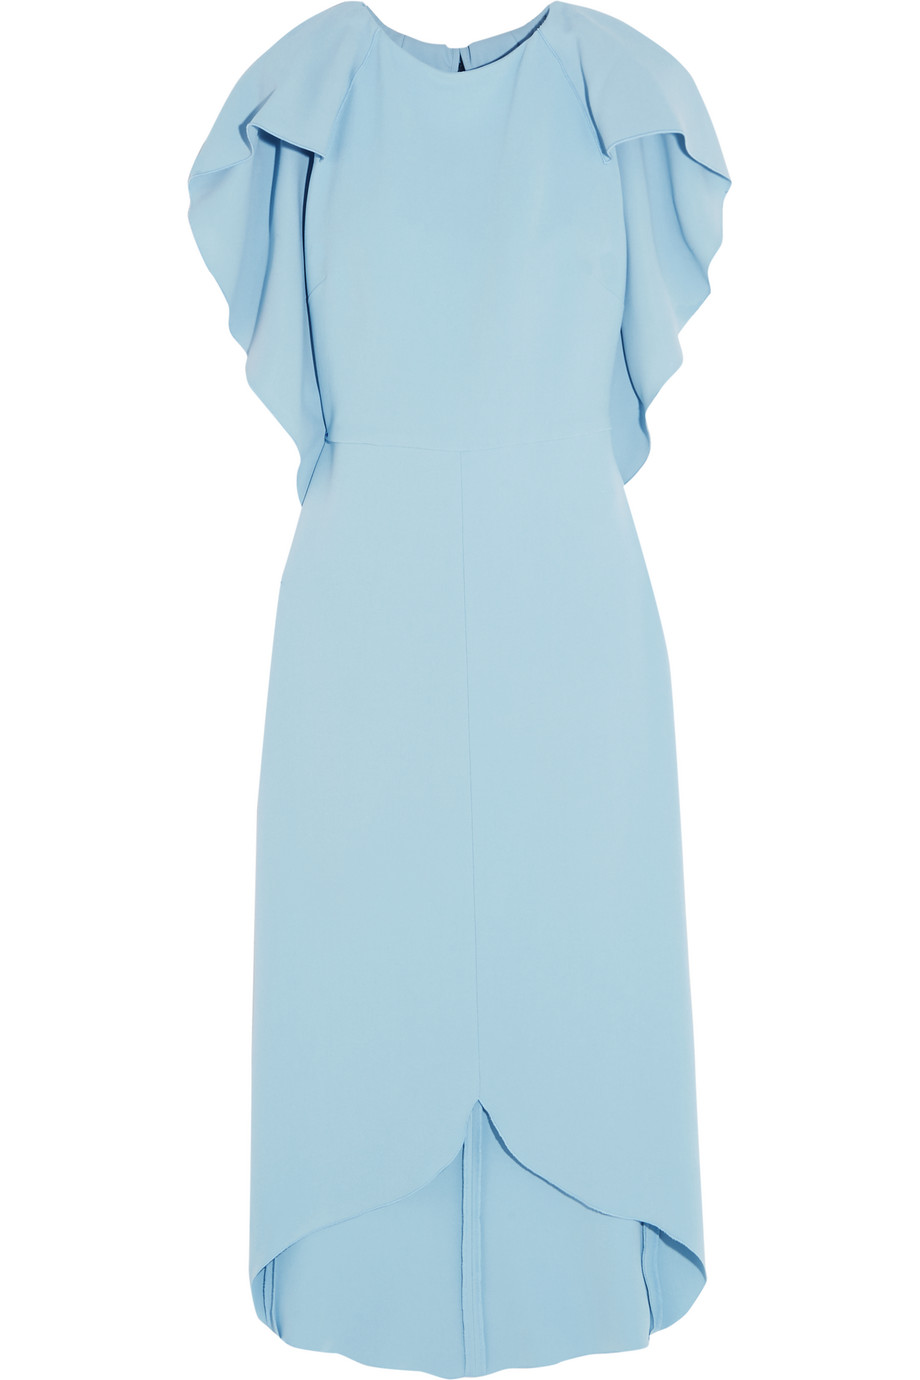 Antonio Berardi Cape-Back Stretch-Crepe Dress, Light Blue, Women's, Size: 42